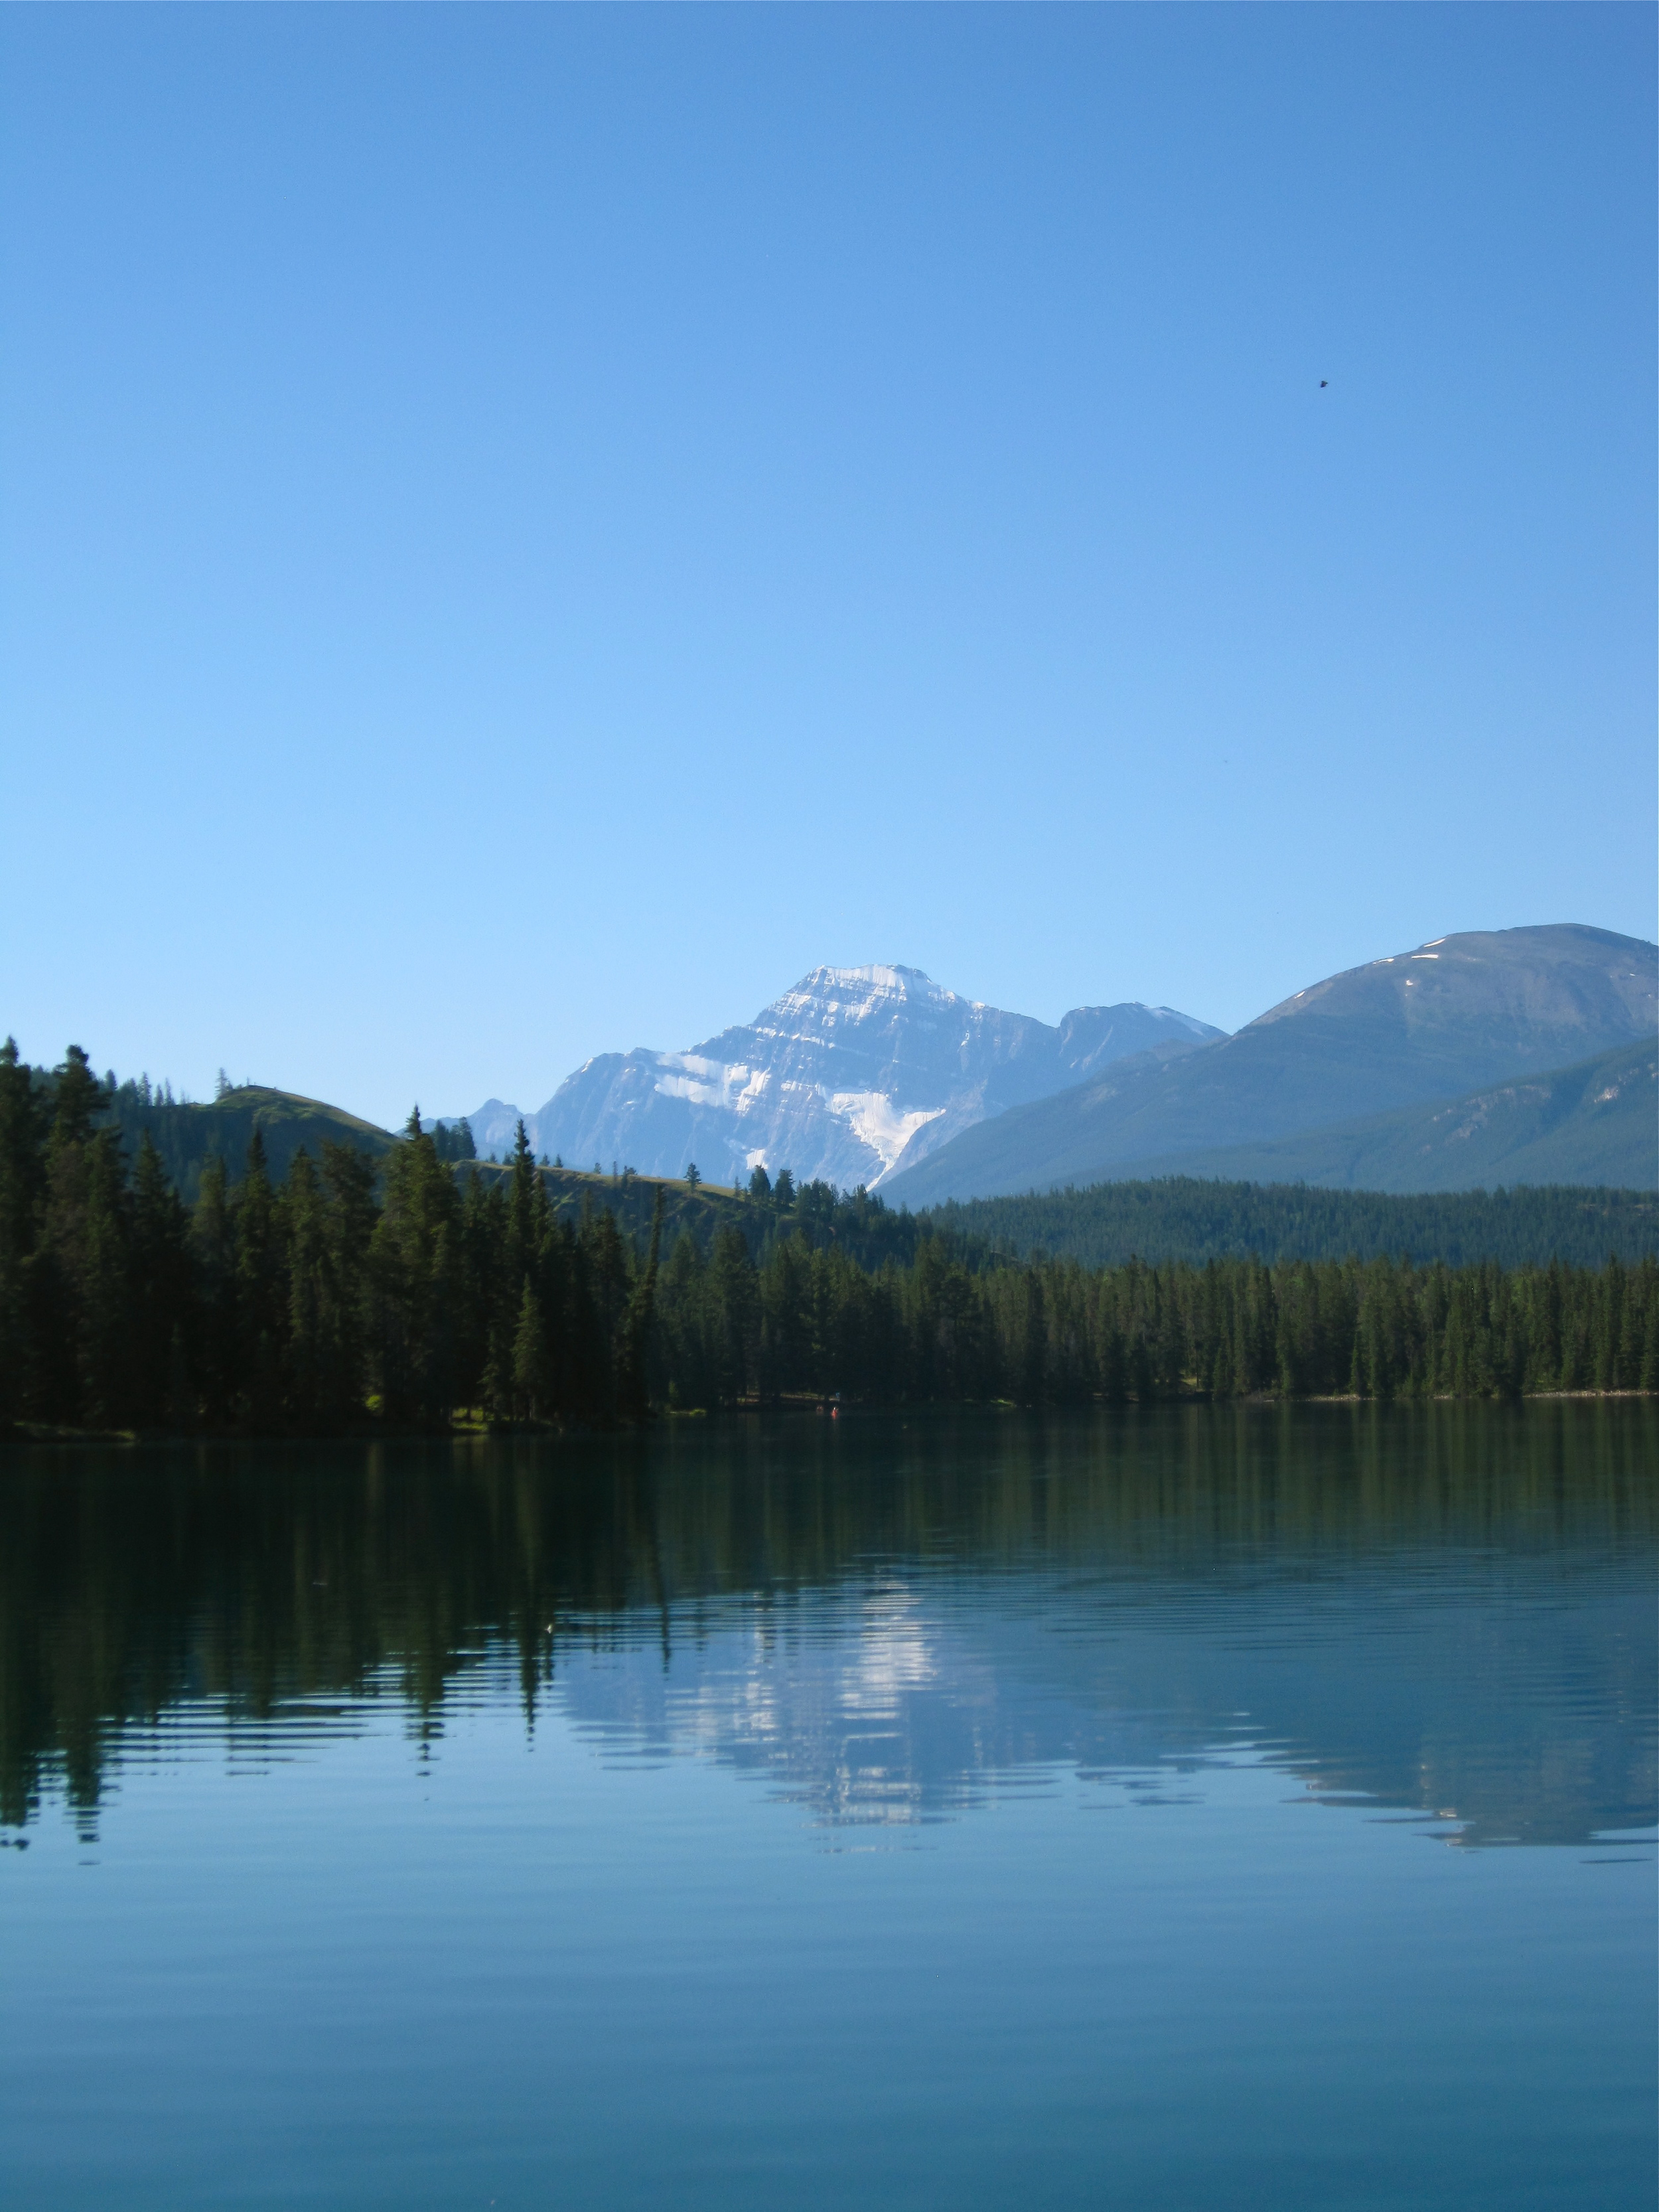 The  view of the lake at The Fairmont Jasper Park Lodge in Jasper, Alberta, Canada